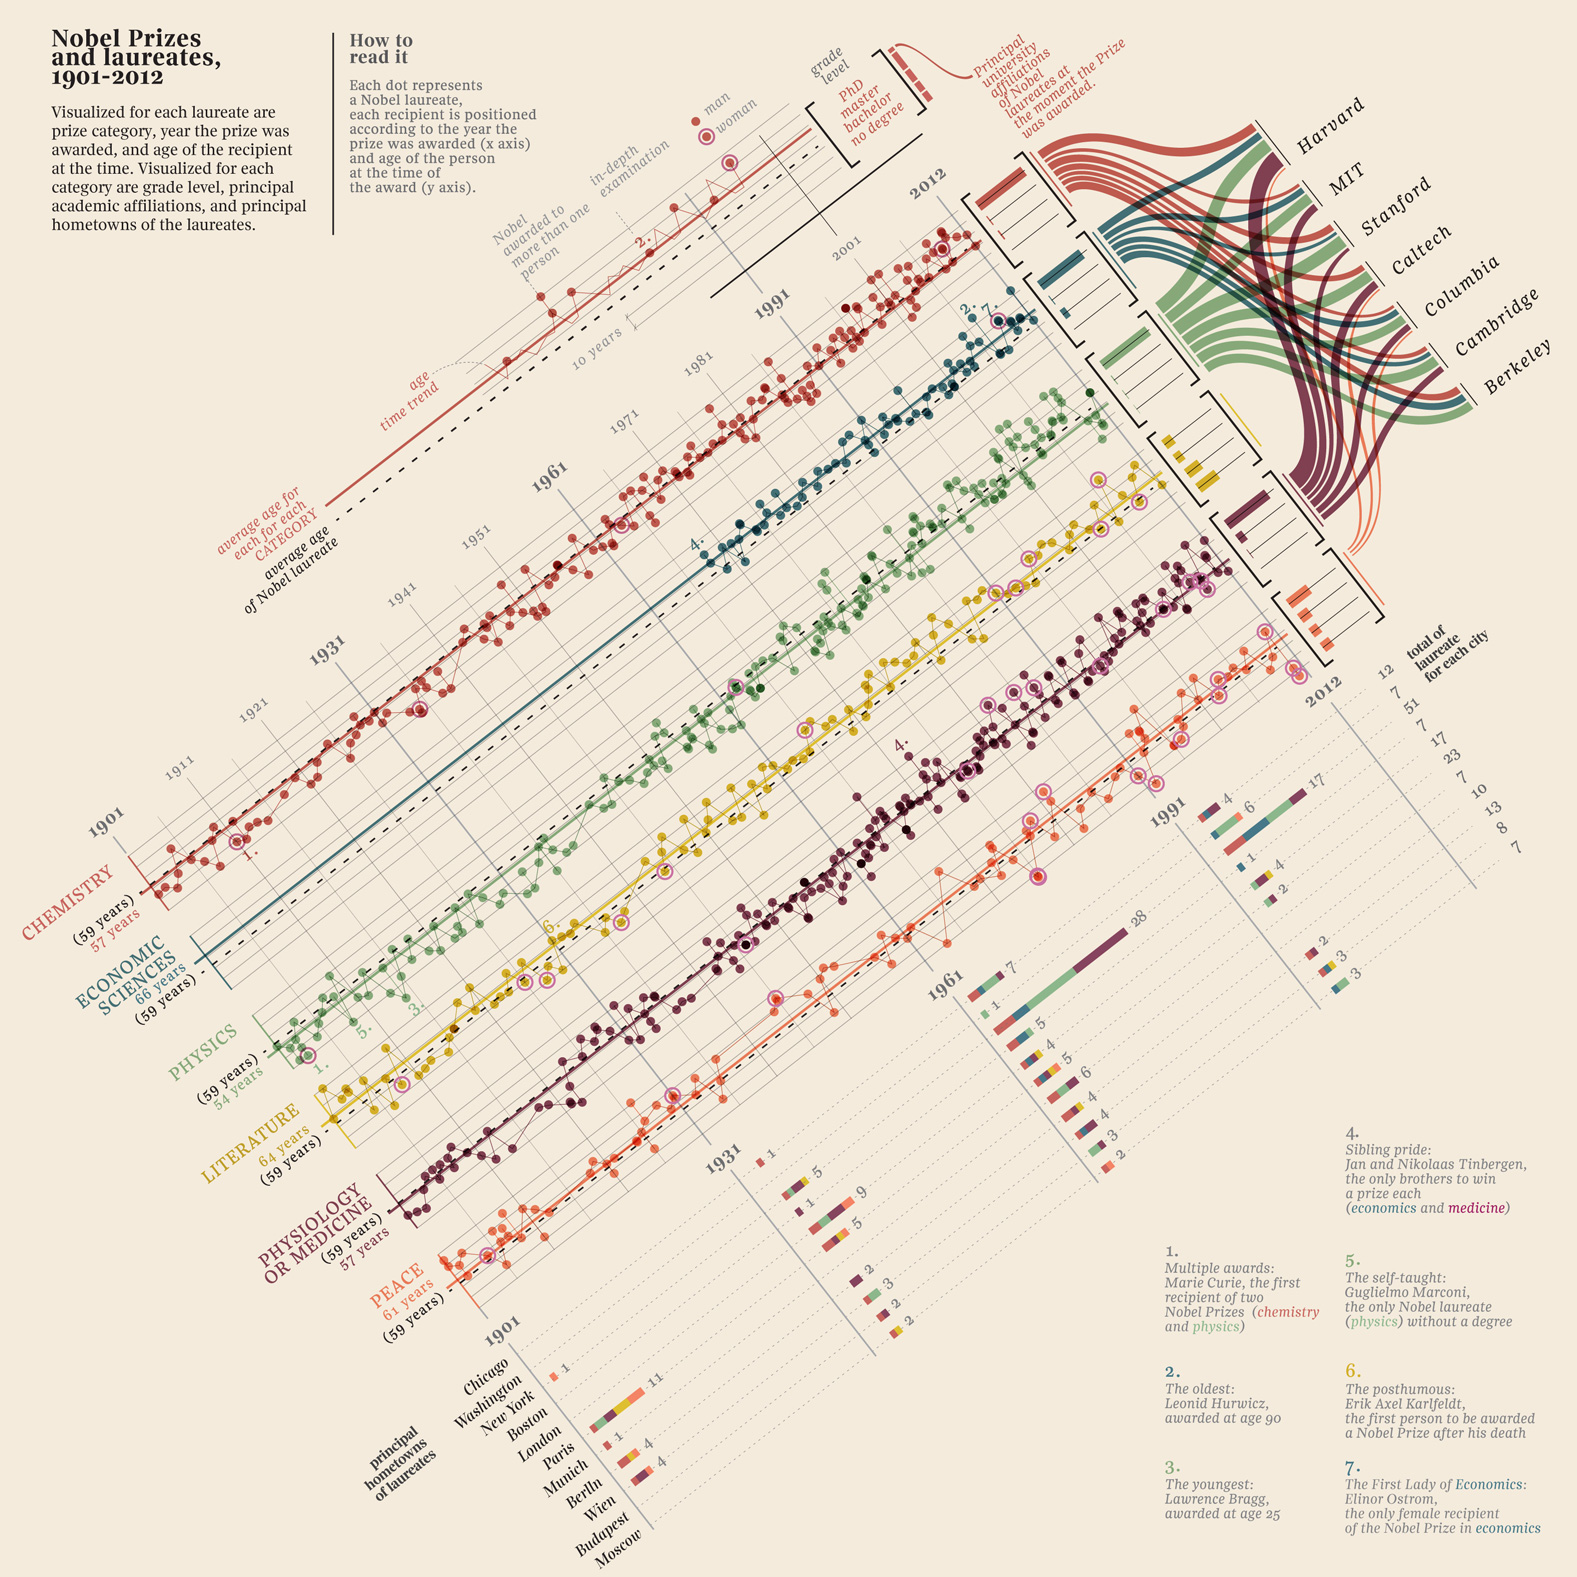 Nobel Prize History-Infographic